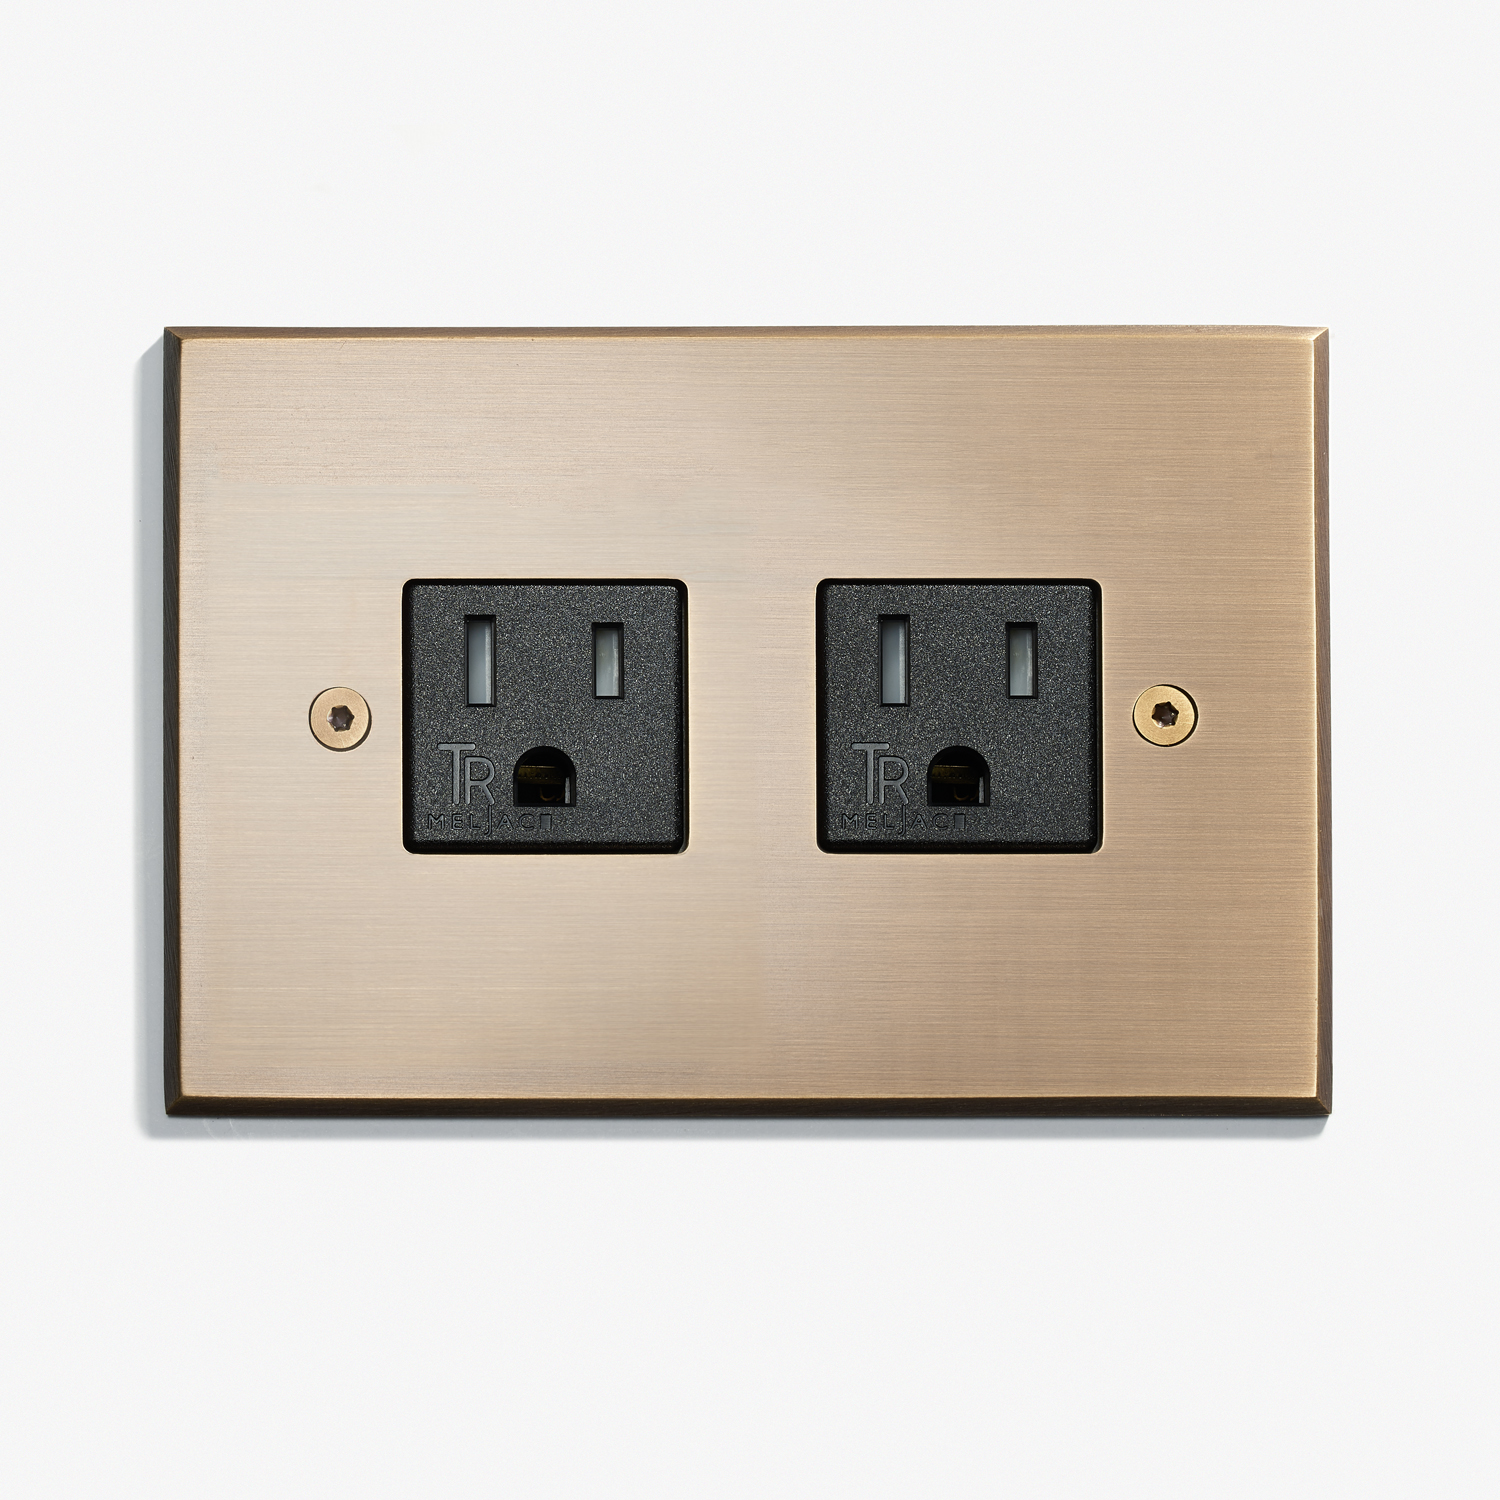 Wall Outlet_117 x 82 - Duplex Outlet - No Covers - Visible Screws - Bronze Medaille Allemand 1.jpg